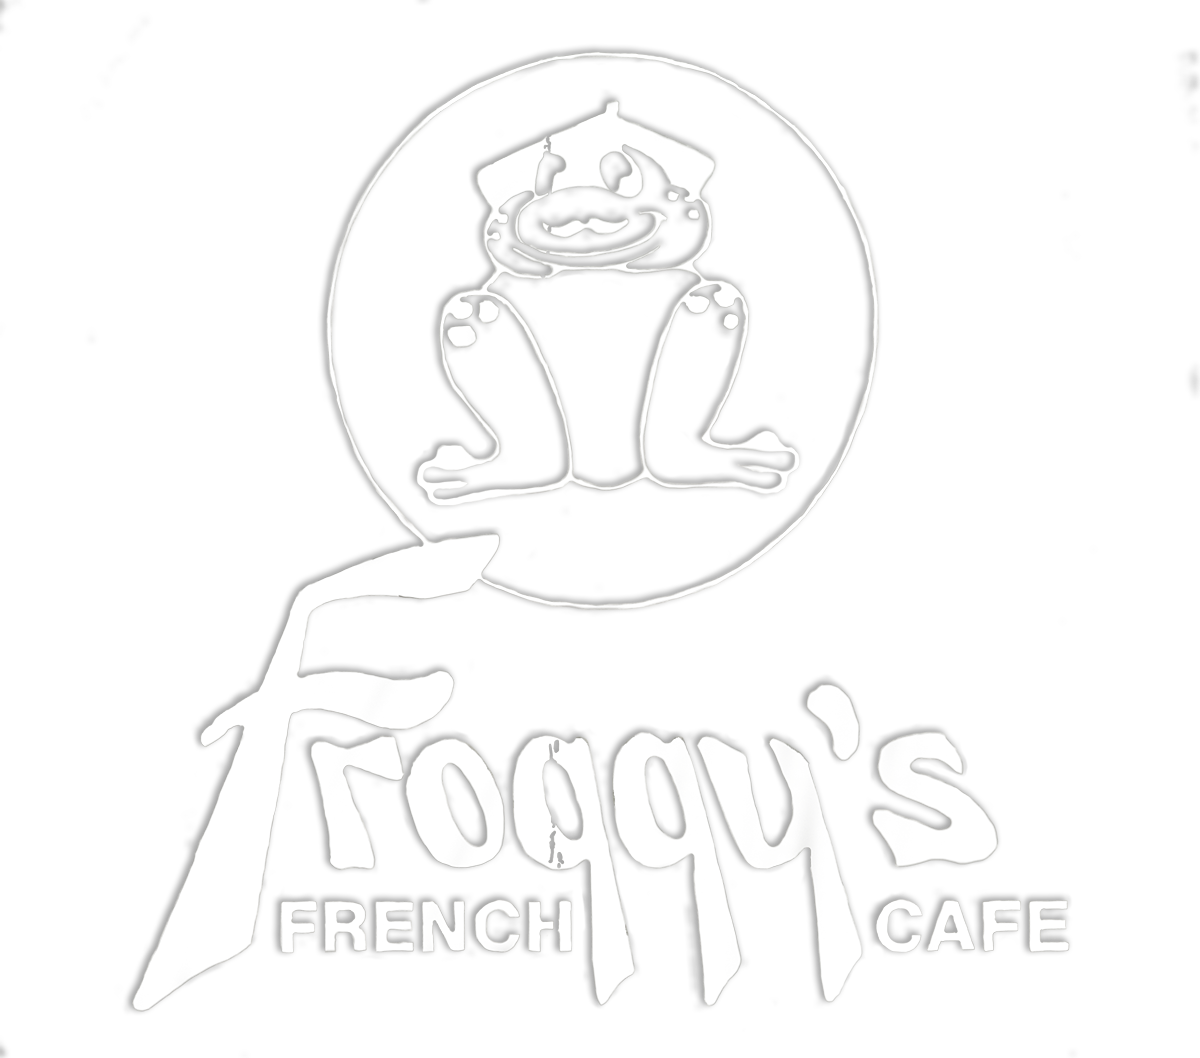 Froggy's French Café